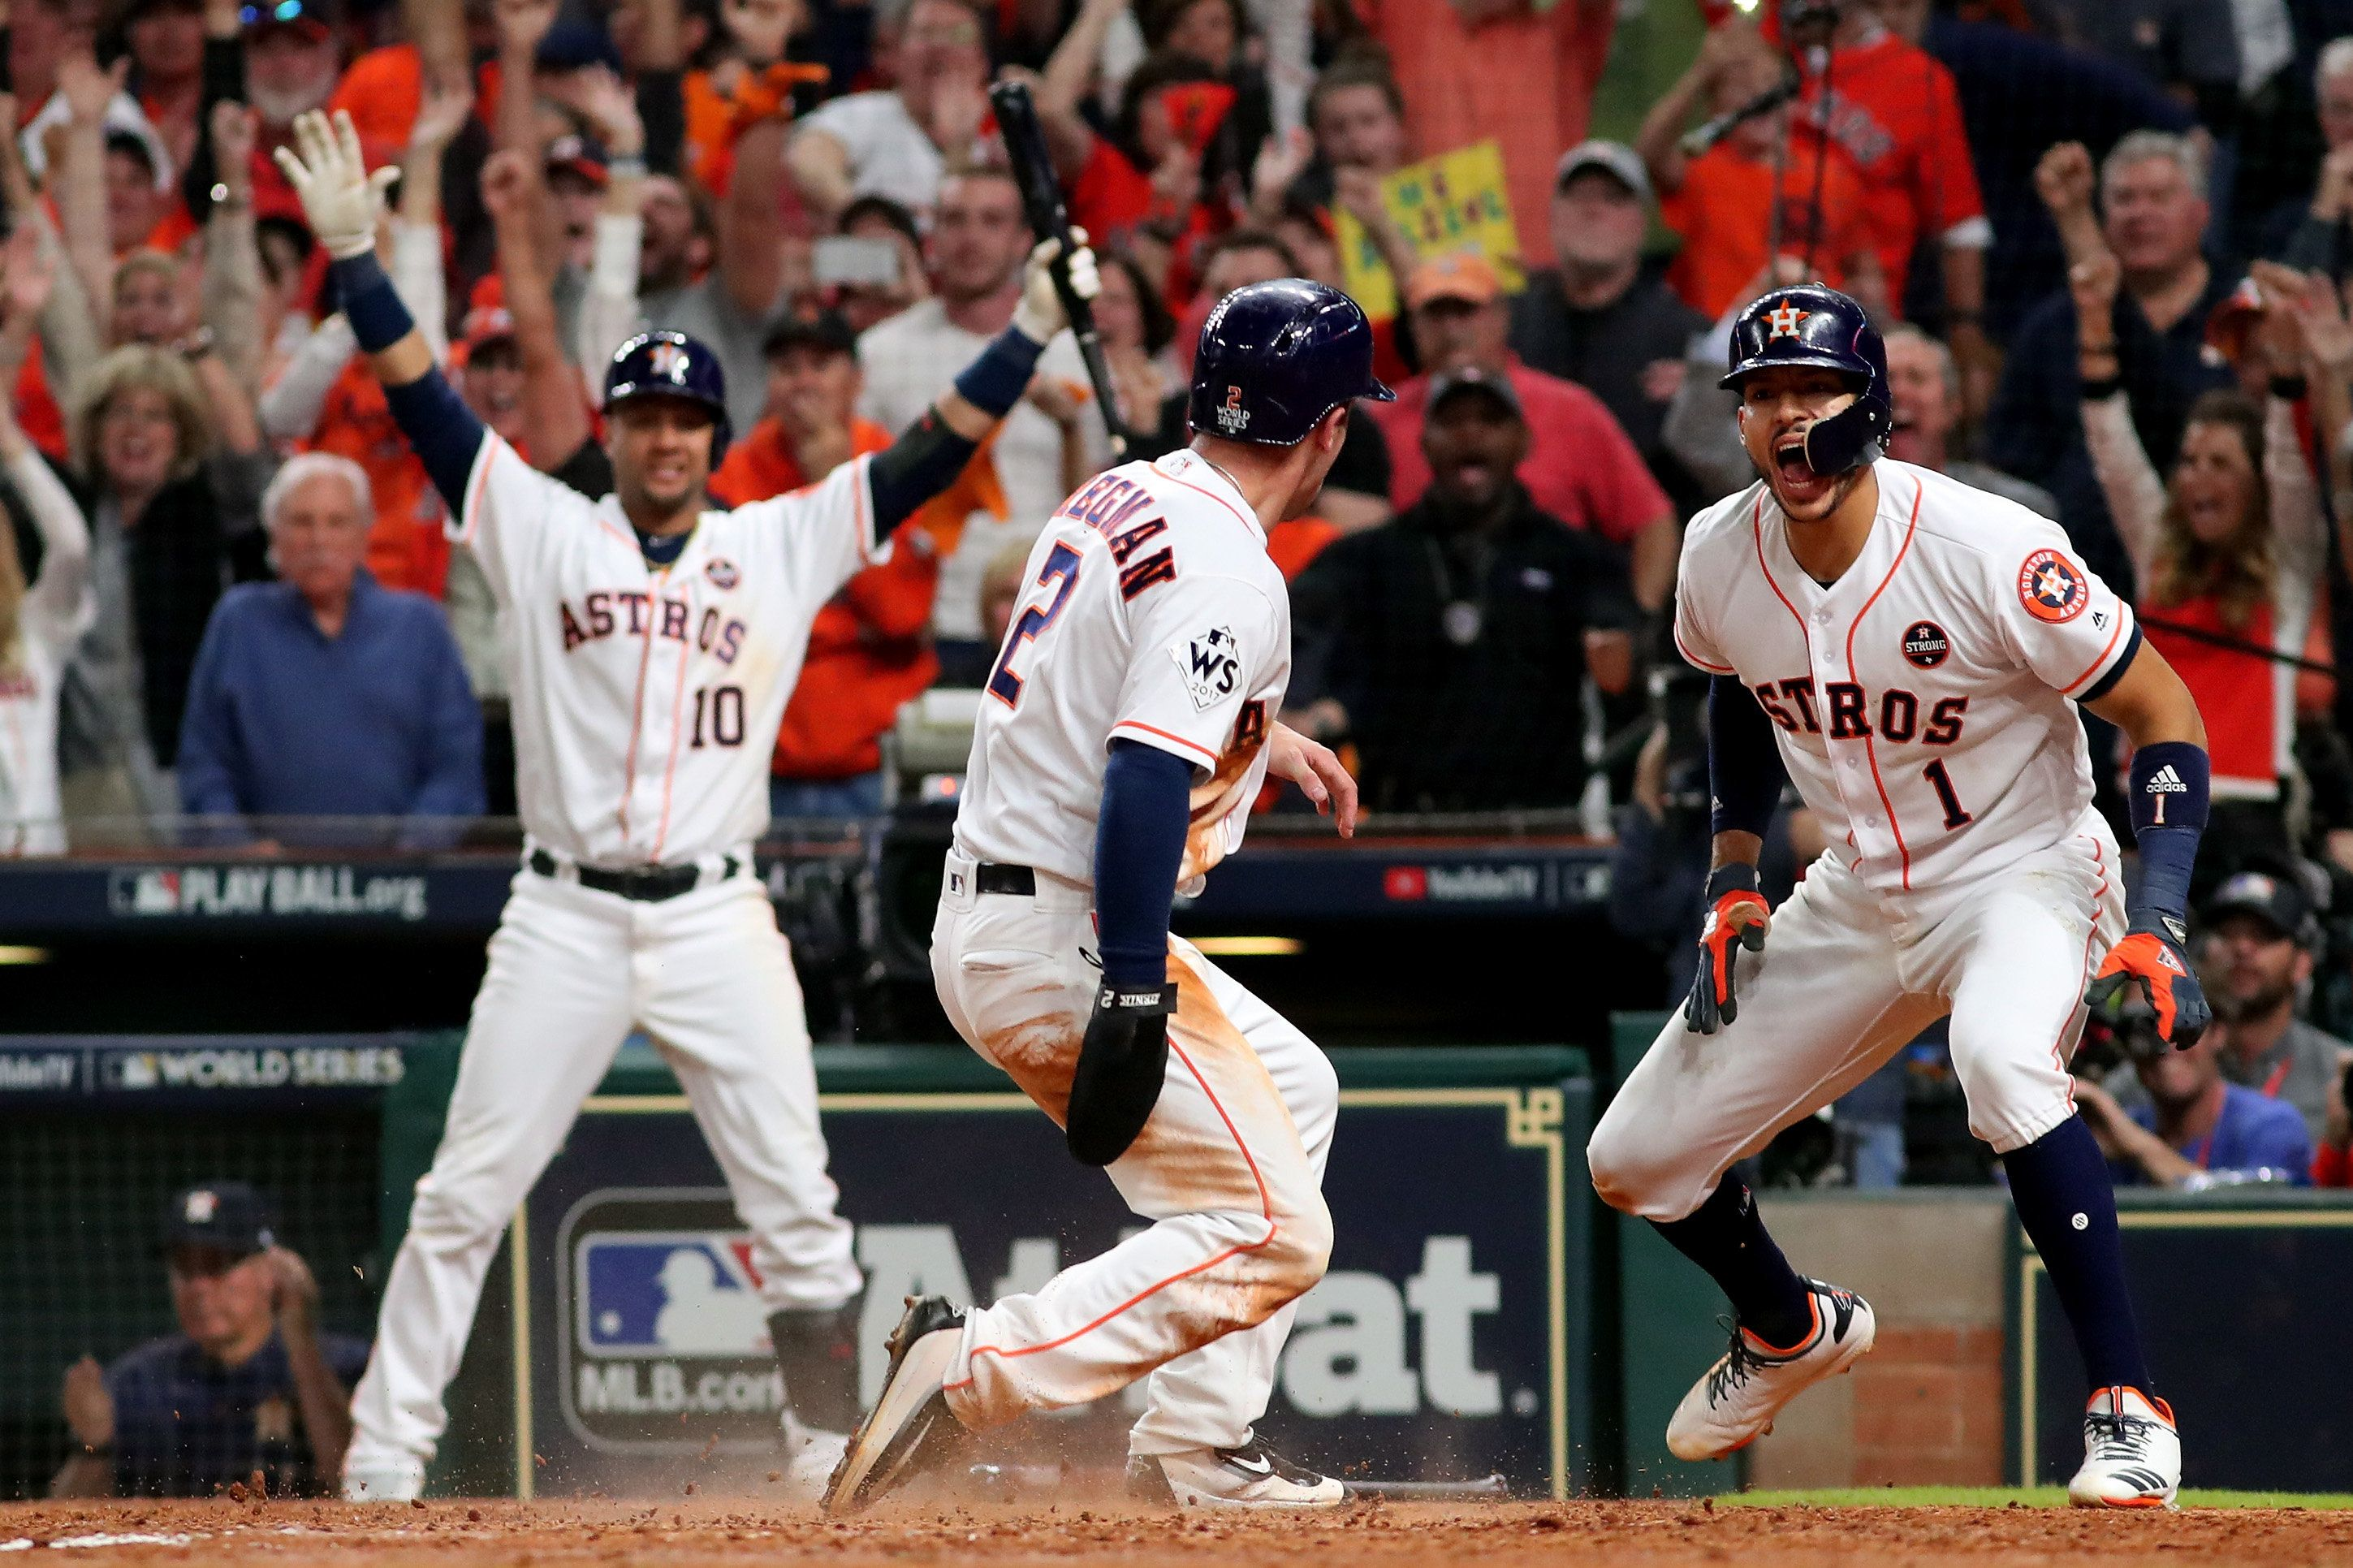 The Houston Astros celebrateduring game five of the 2017 World Seriesagainst the Los Angeles Dodgers.